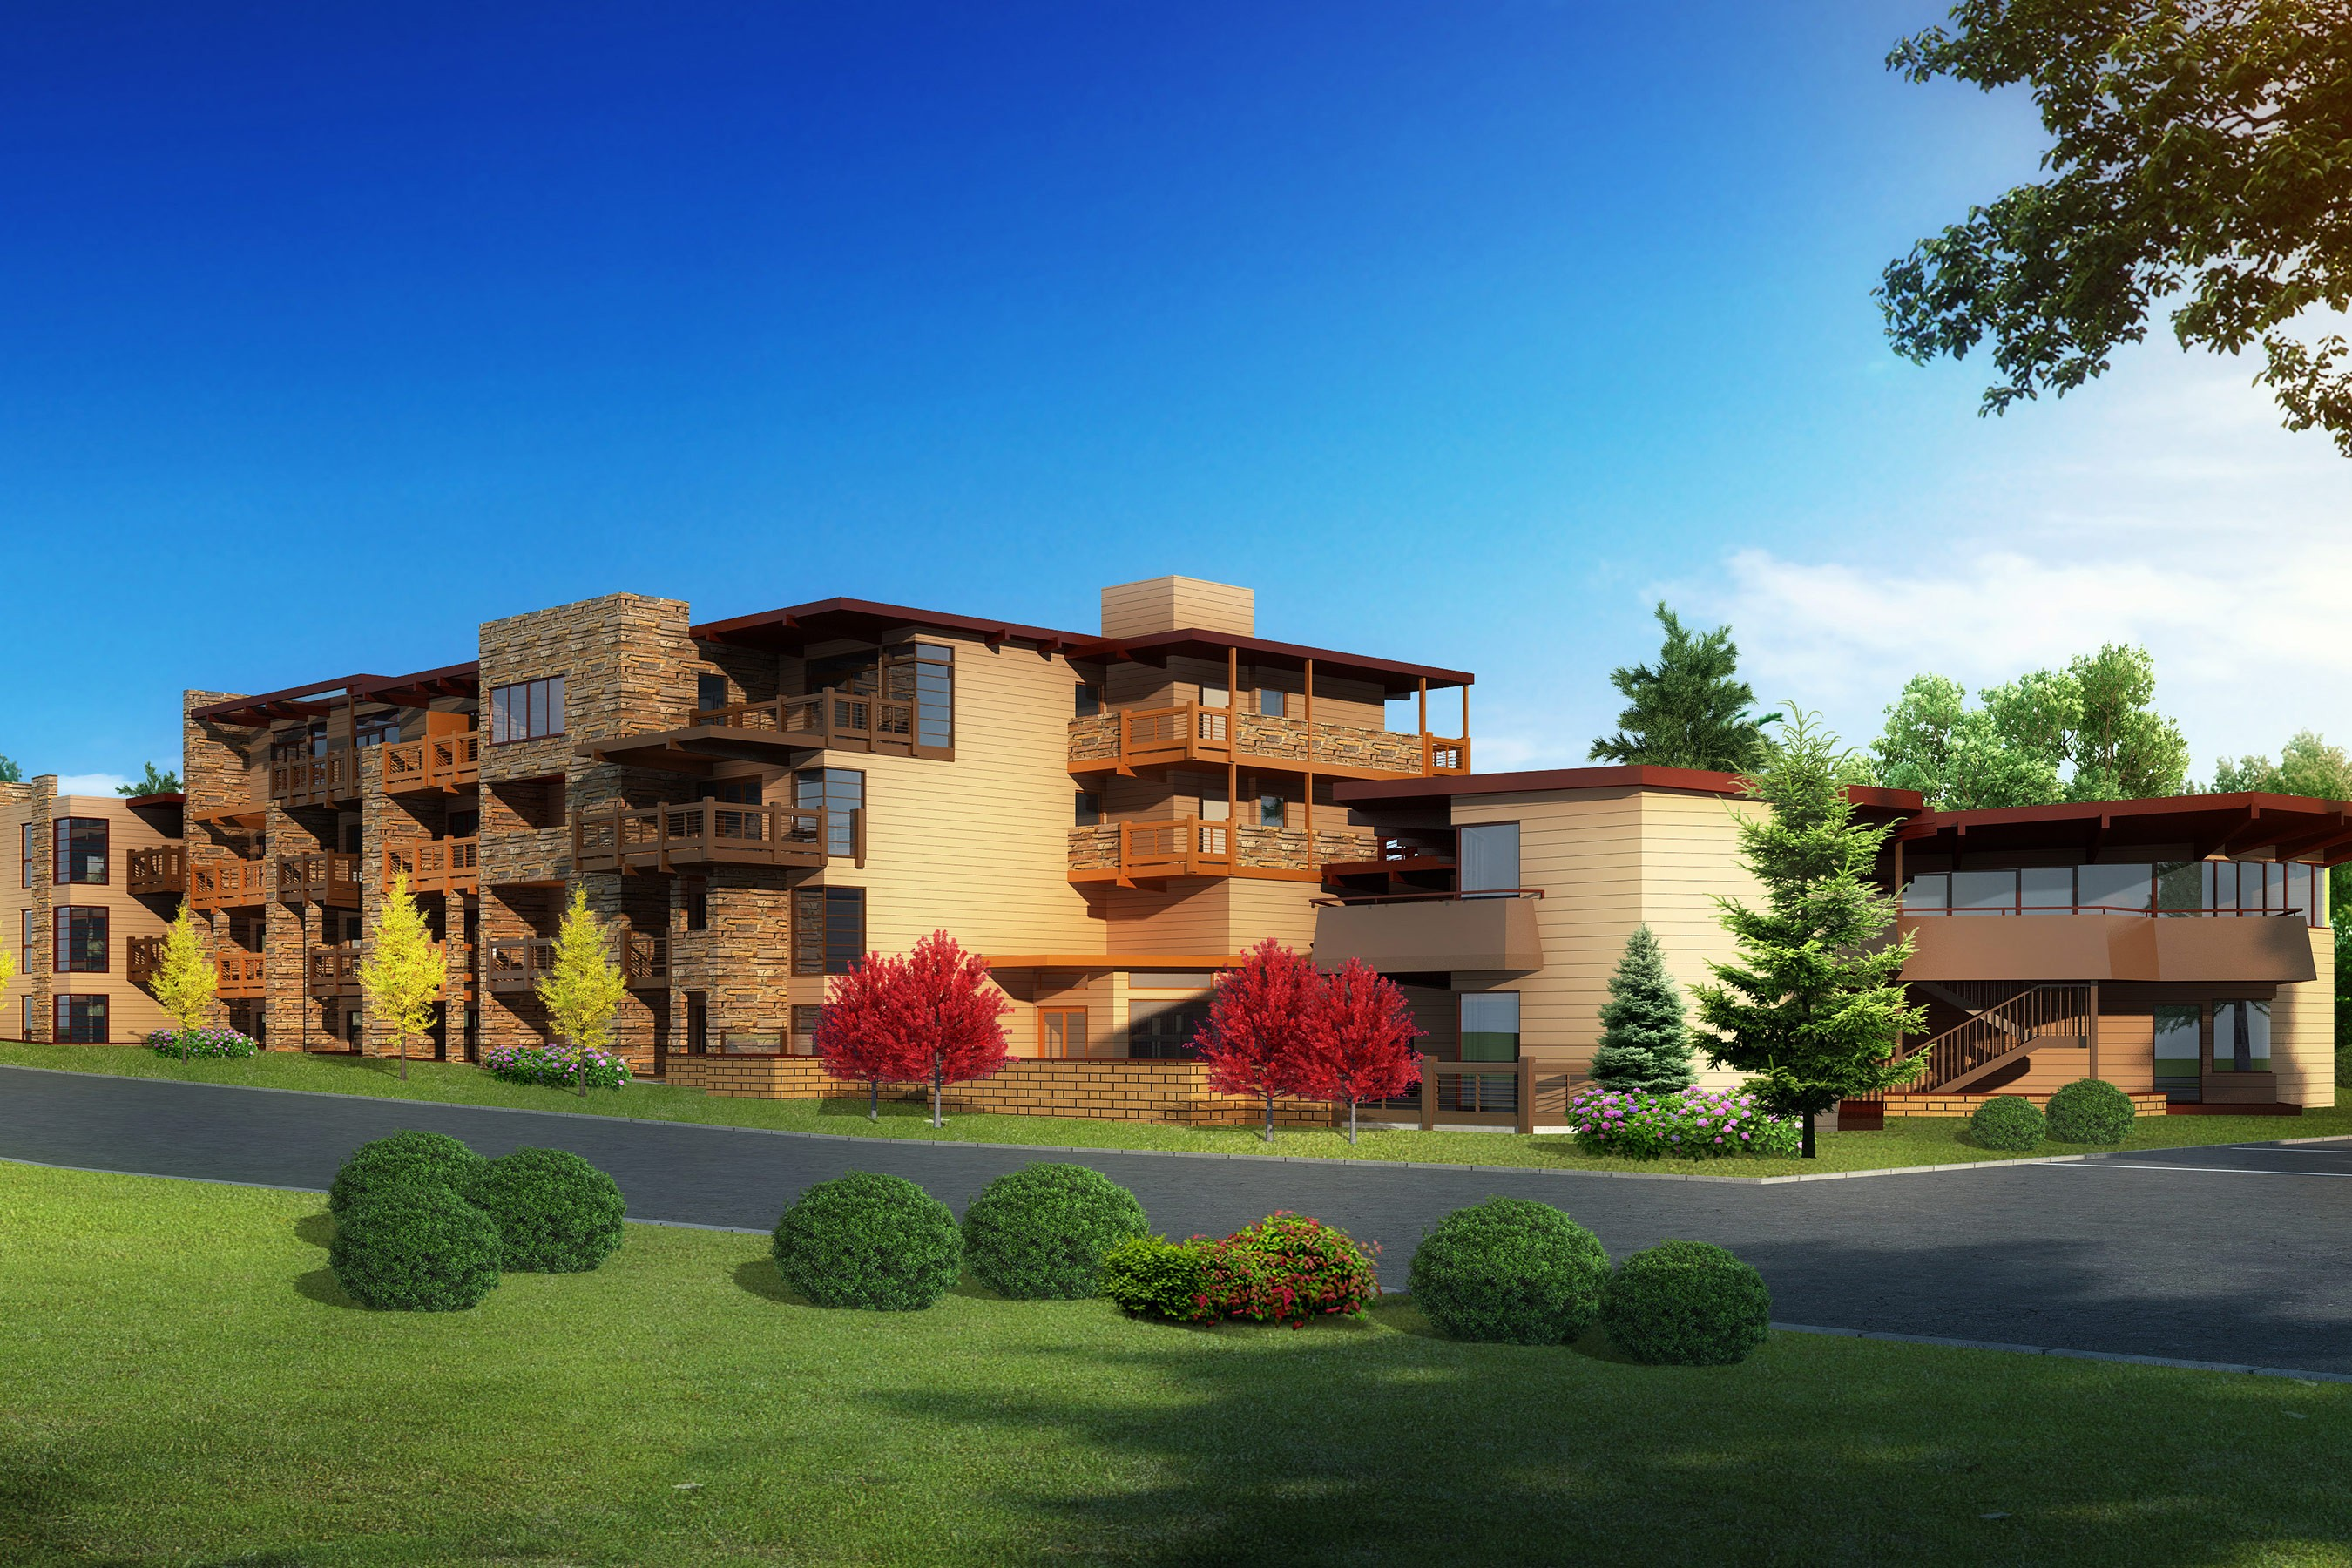 Condominium for Sale at Boomerang Lodge 500 W. Hopkins Avenue Unit 104 Aspen, Colorado, 81611 United States